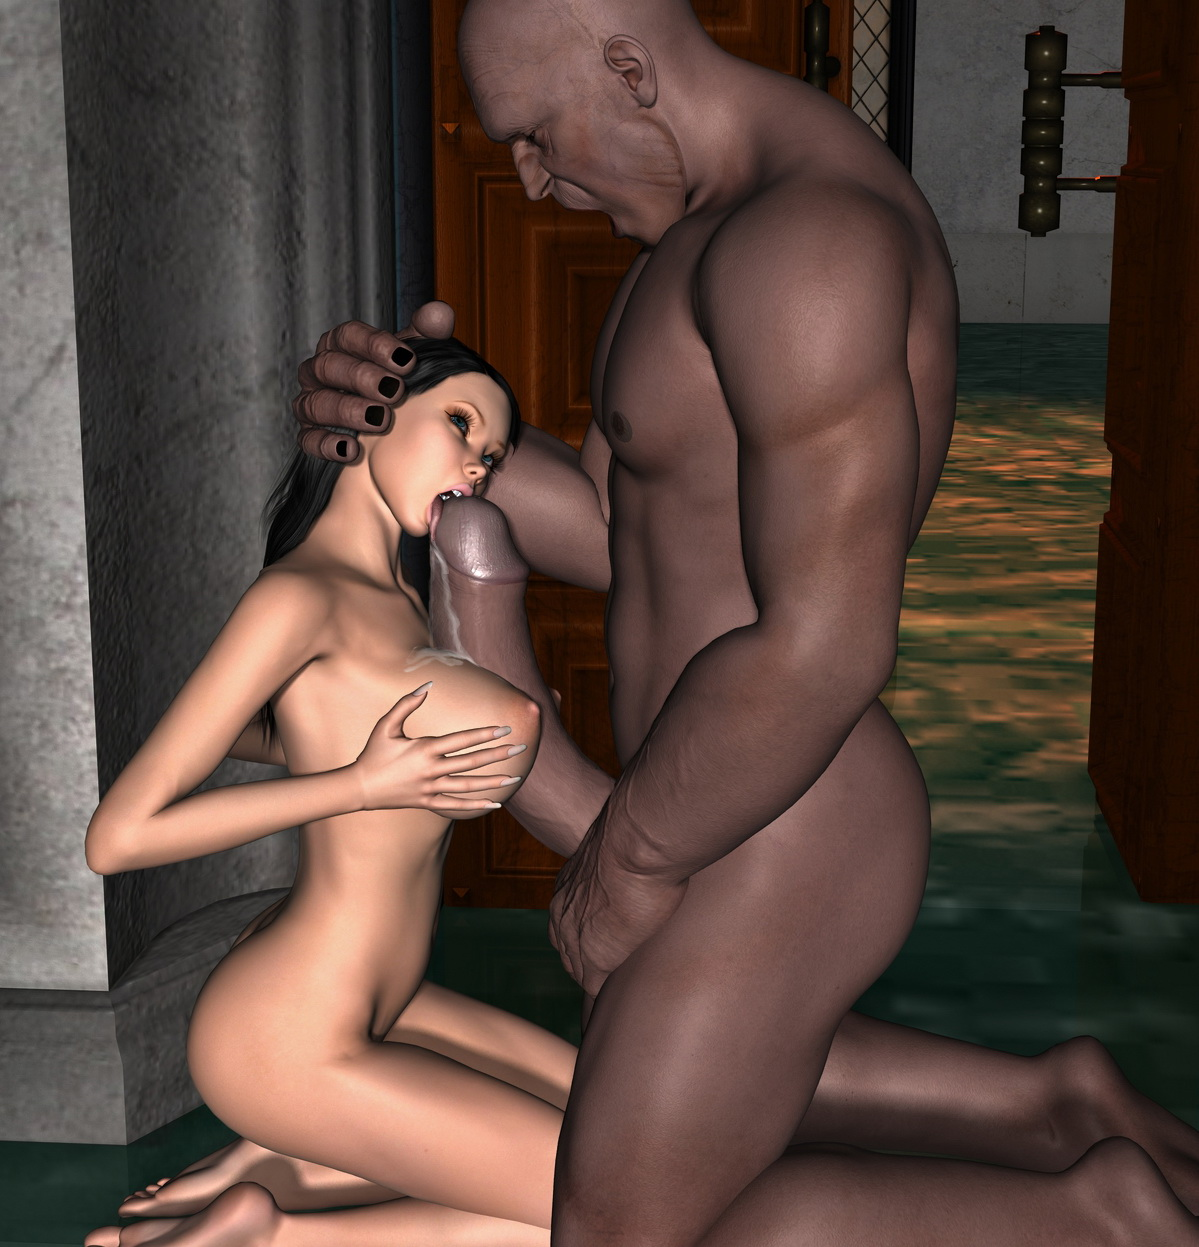 Sex pictures that move 3d pornos toons